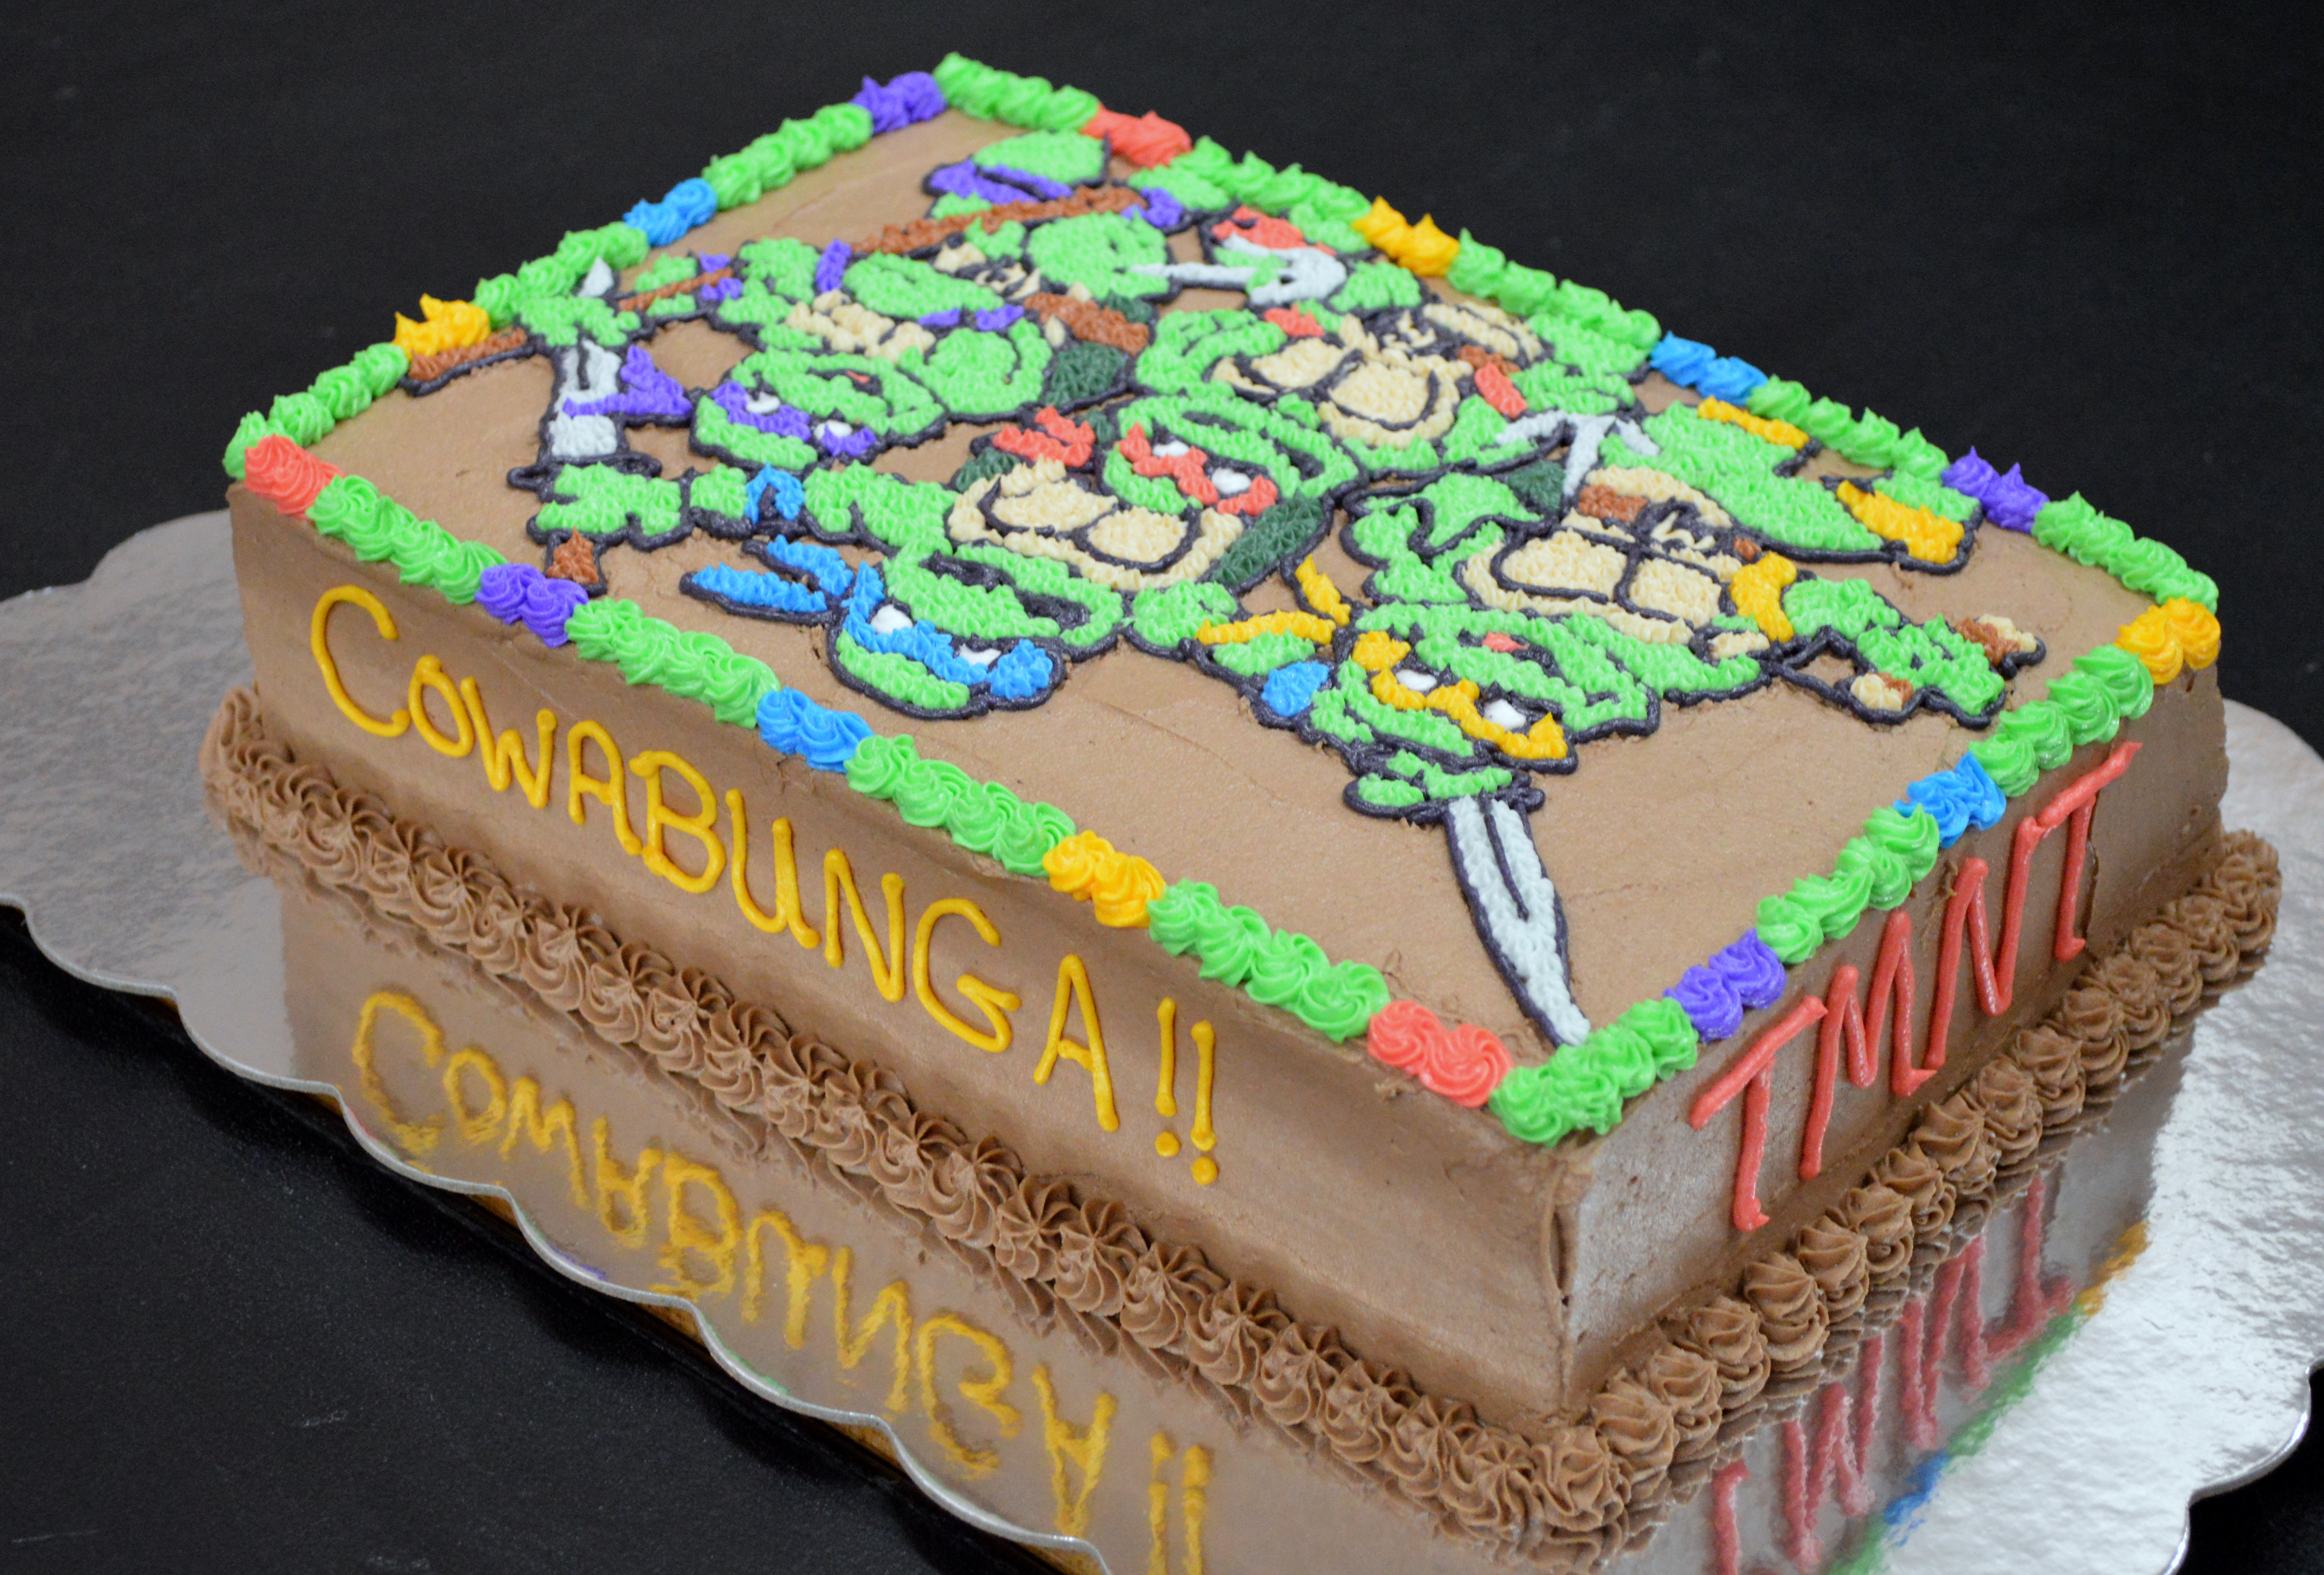 Teenage Mutant Ninja Turtle Cake A Little of This and a Little of That